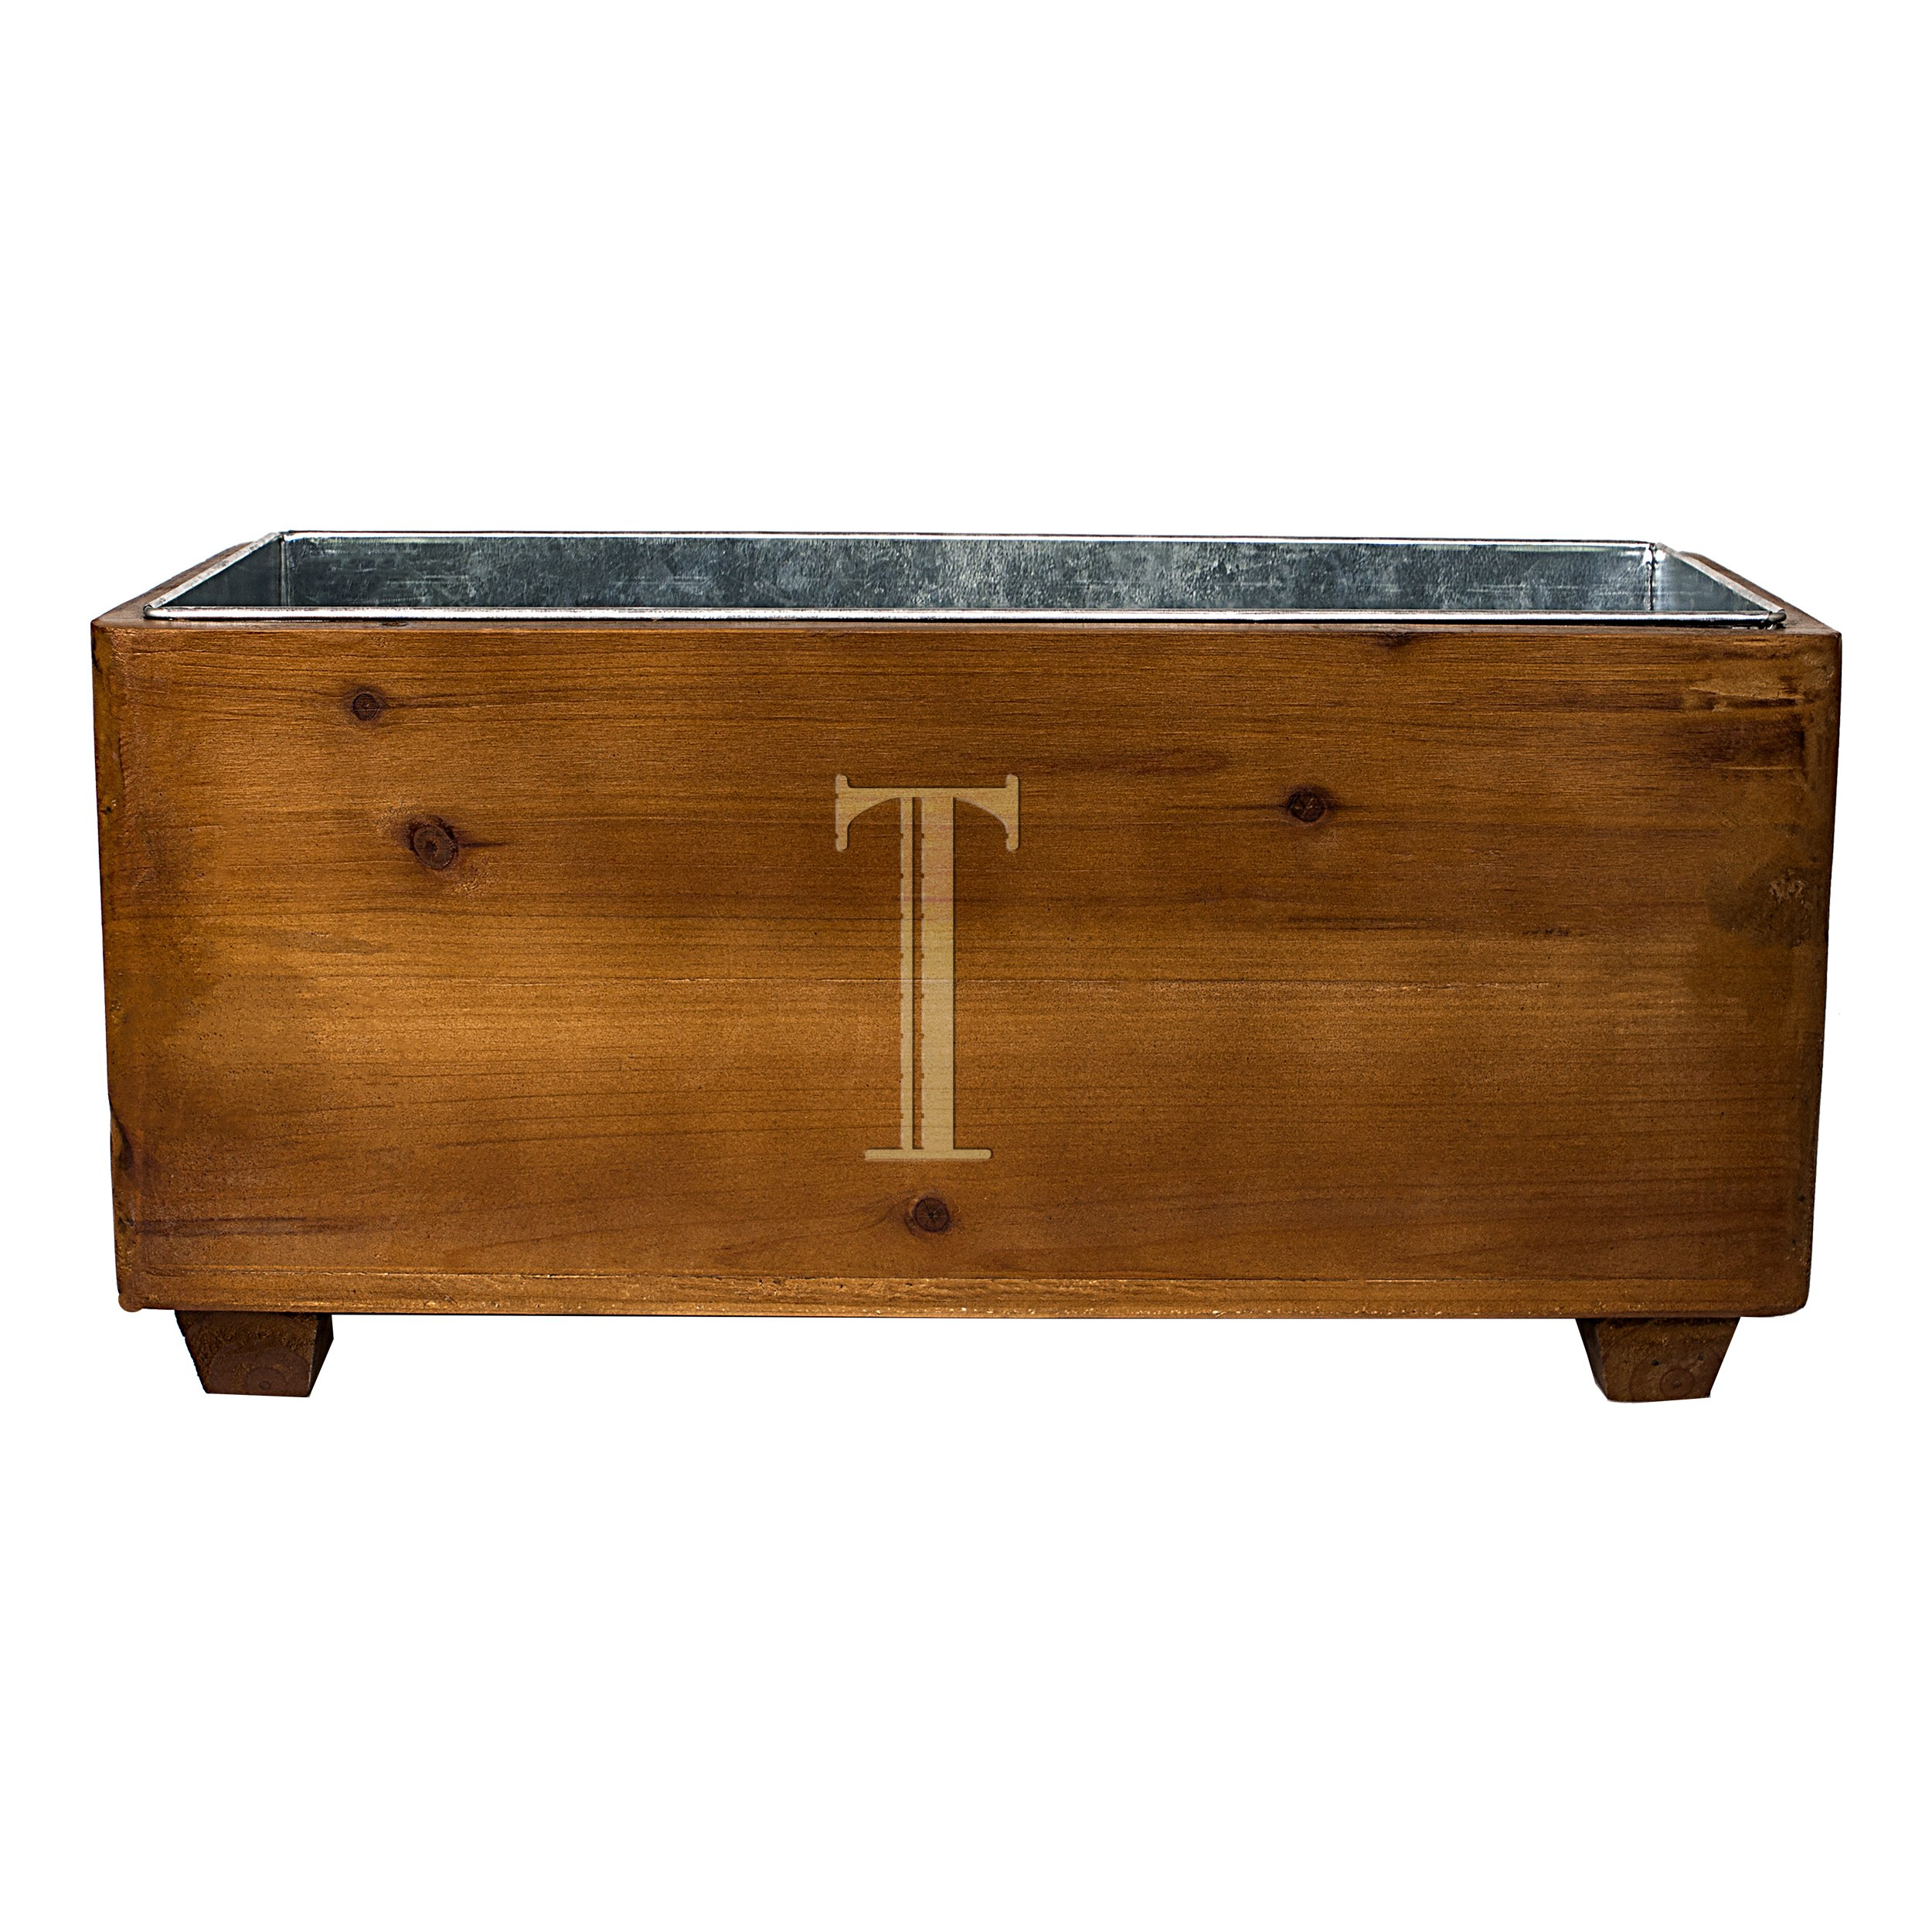 Cathy's Concepts Personalized Wooden Wine Trough, Letter T